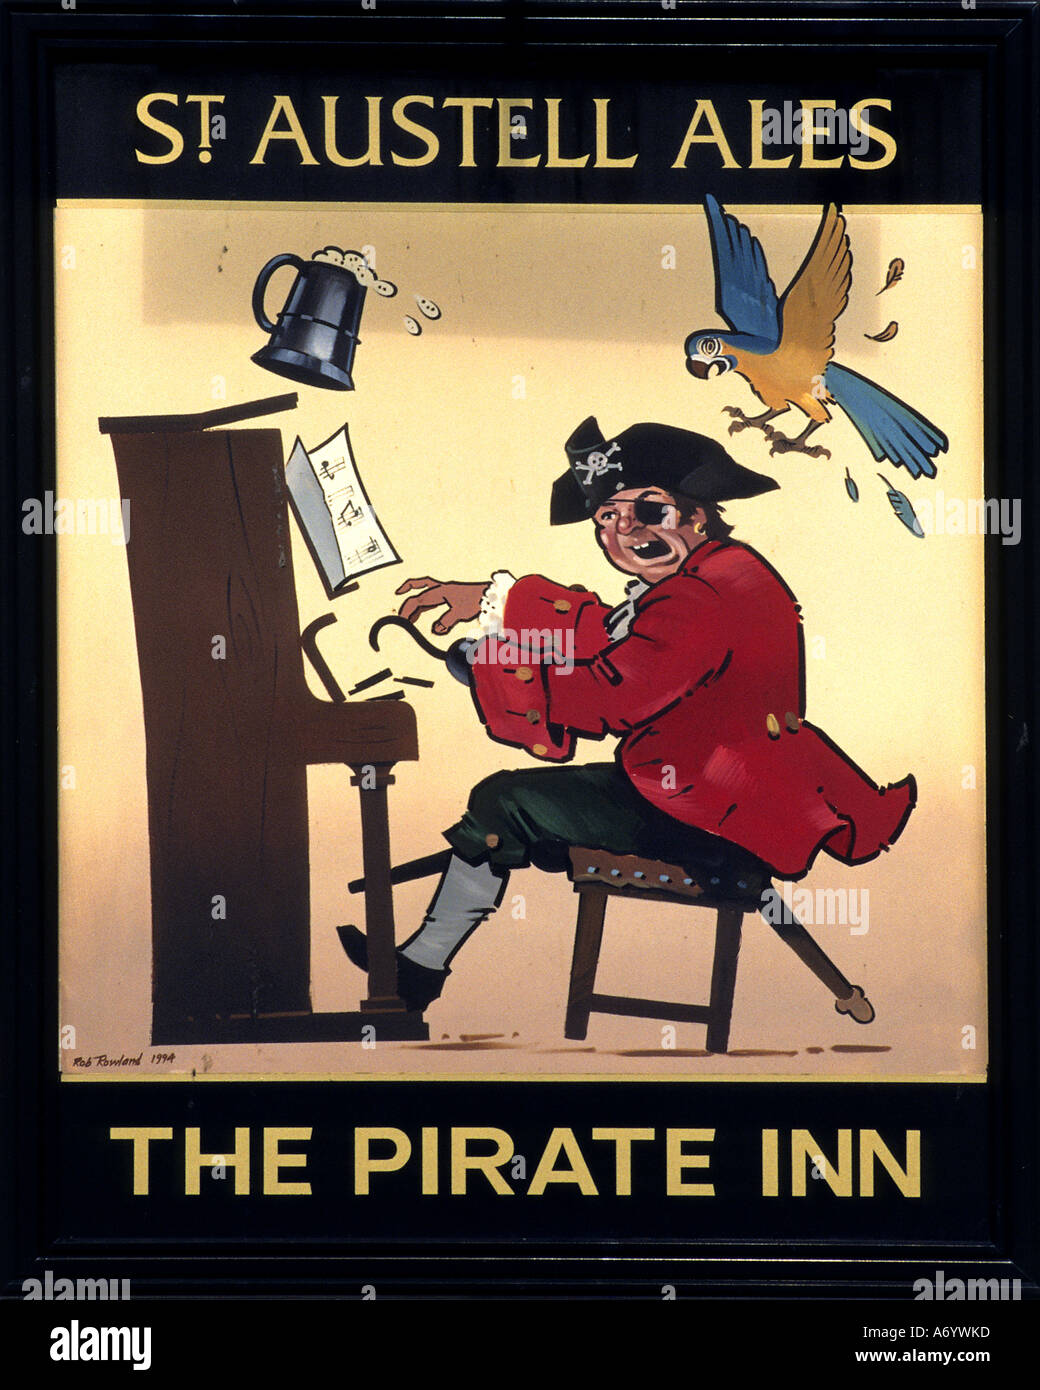 St Austell Ales The pirate inn London city Bar Pub English - Stock Image